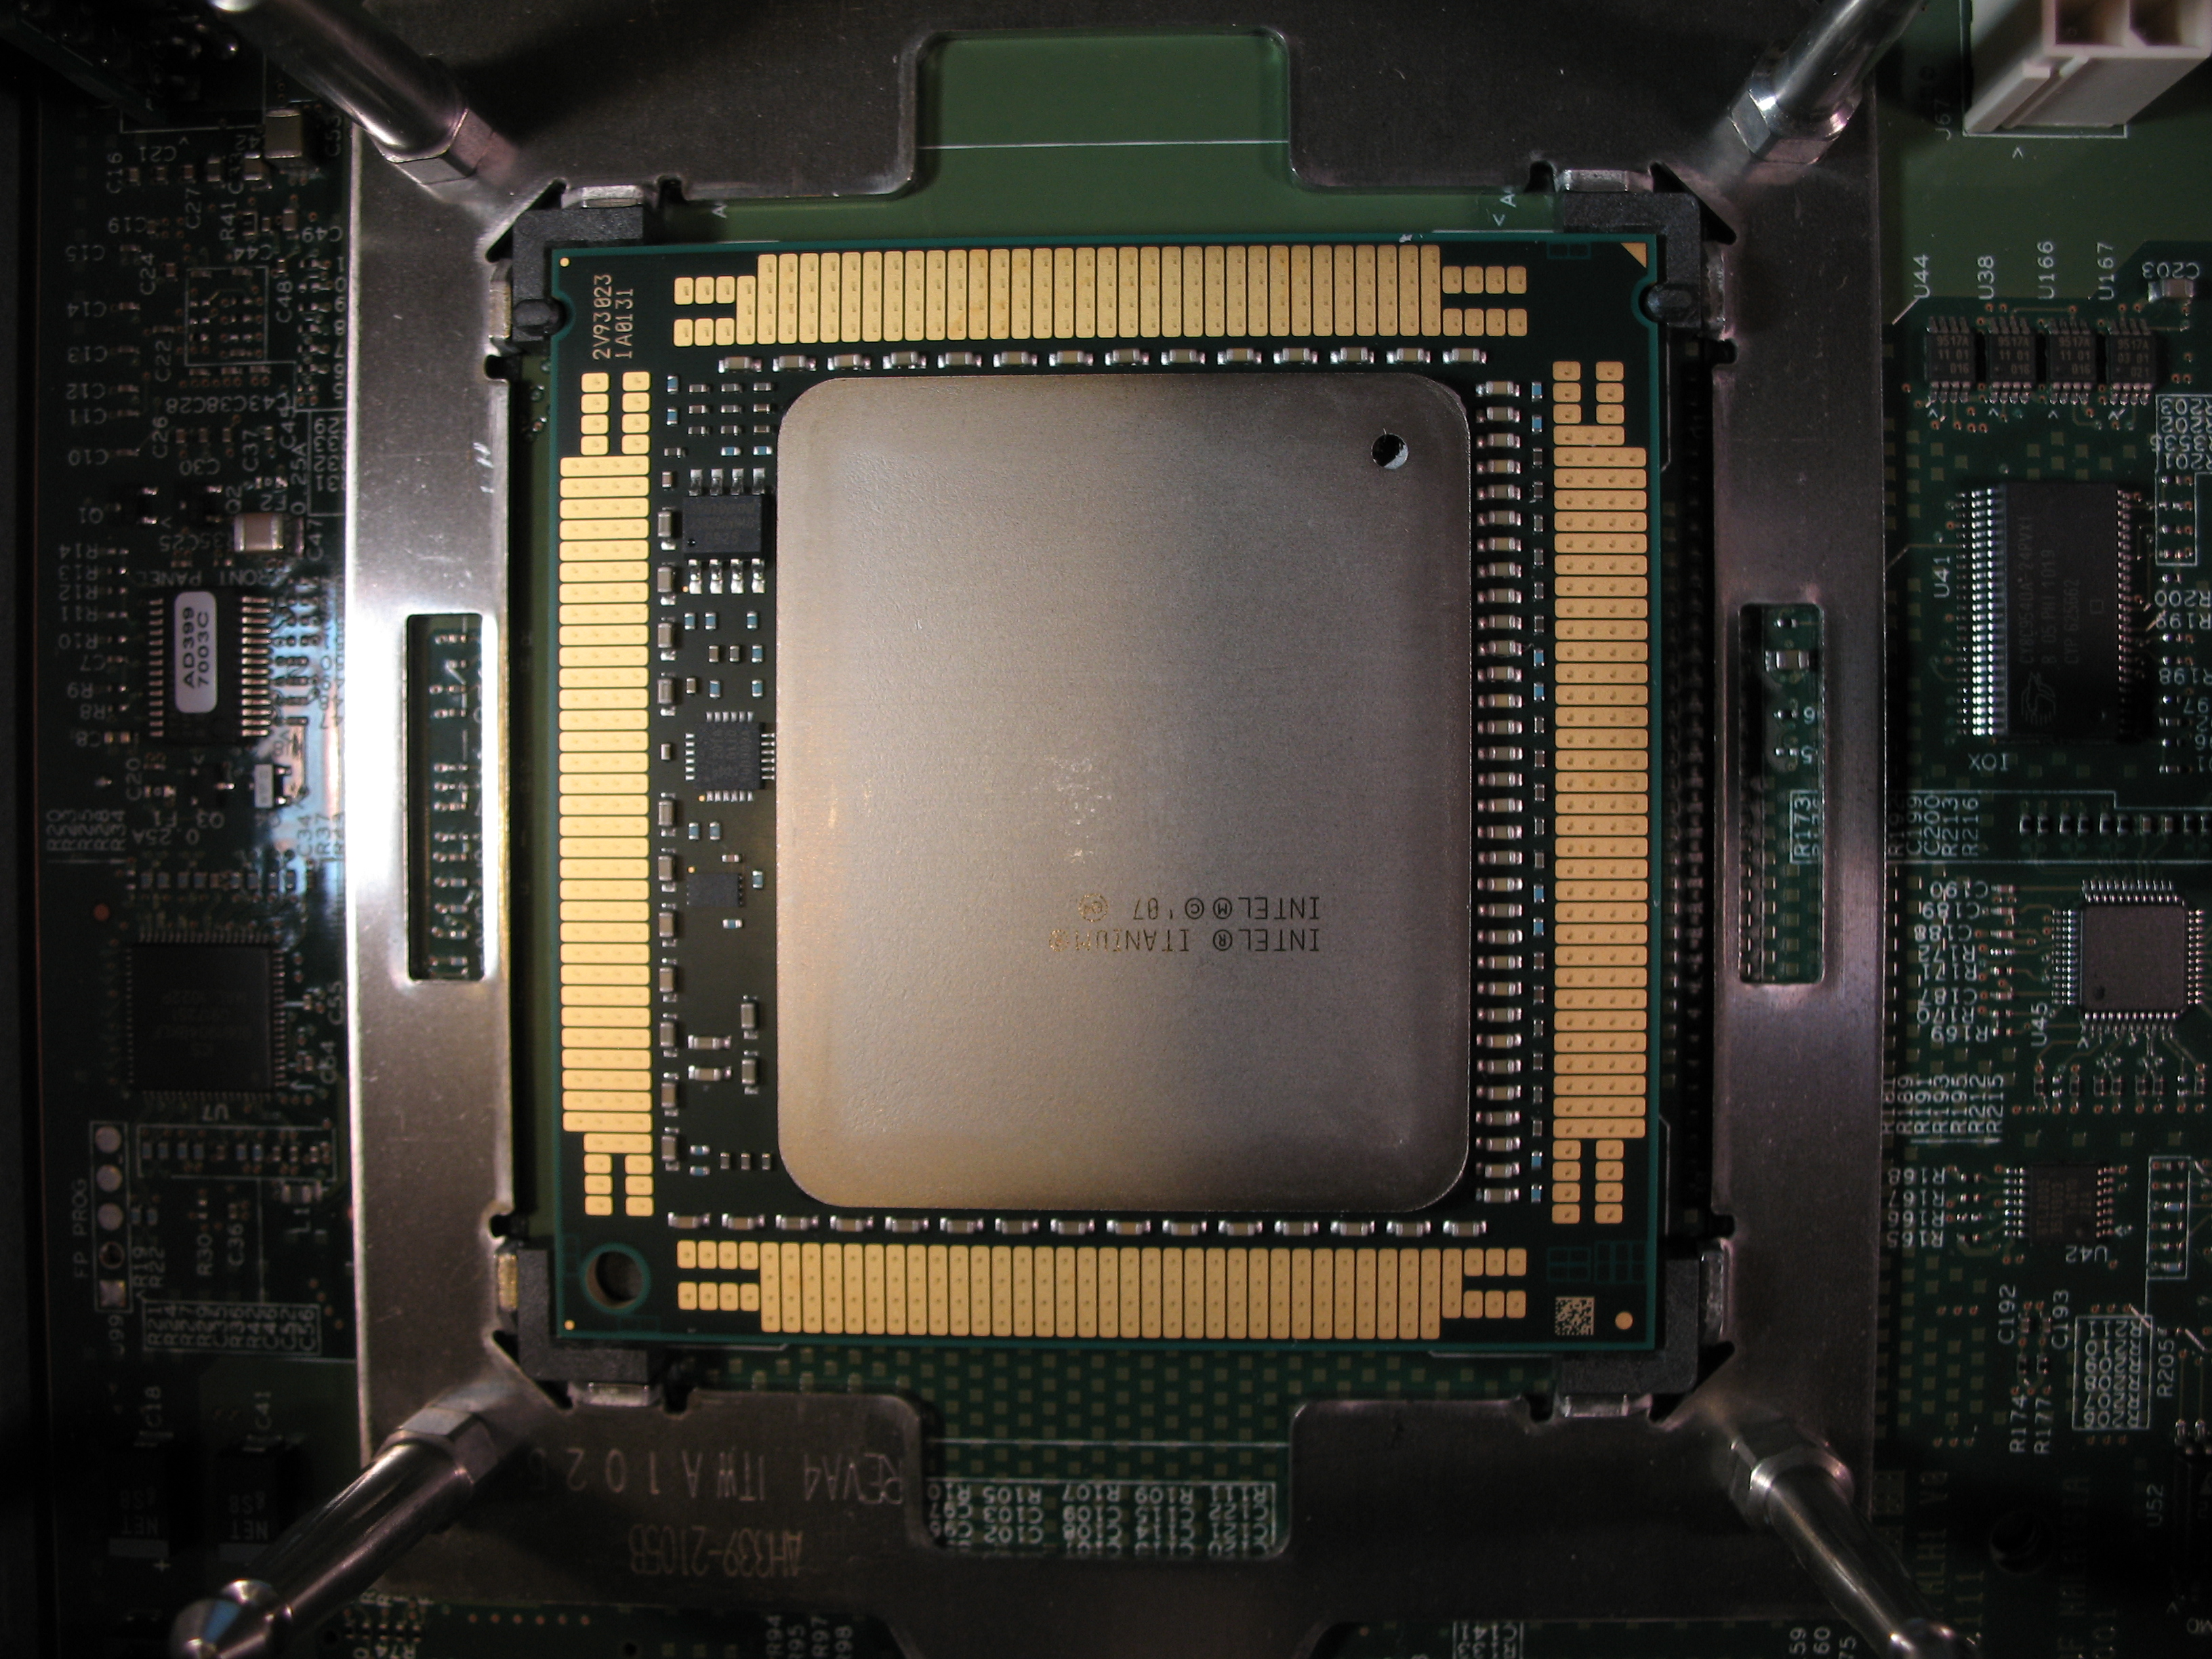 File:Intel Itanium 9300 sitting inIntel LGA 1248 socket.JPG